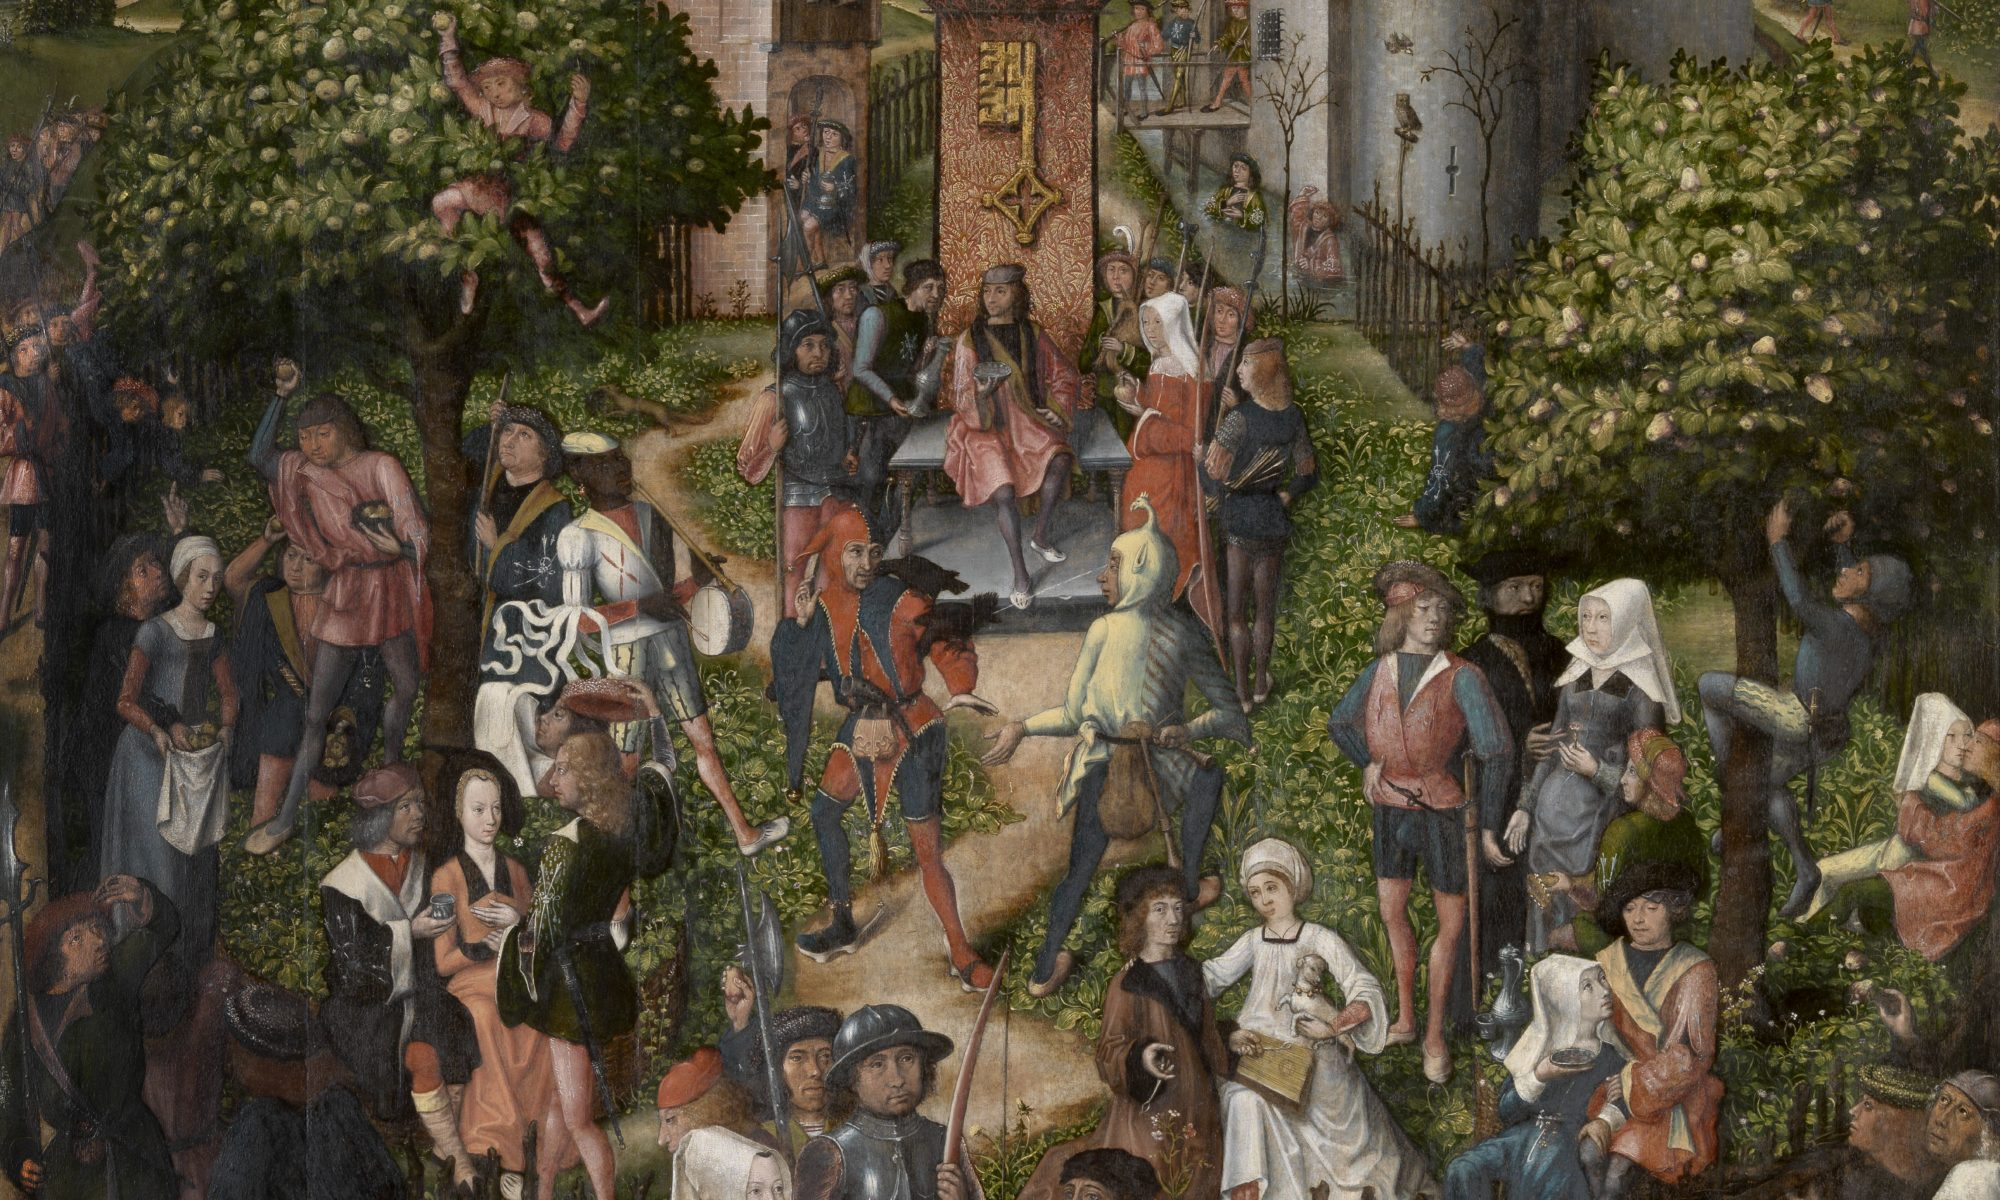 Painting by Master of Frankfurt, Festival of the Archers, 1493. An outdoor festival scene.